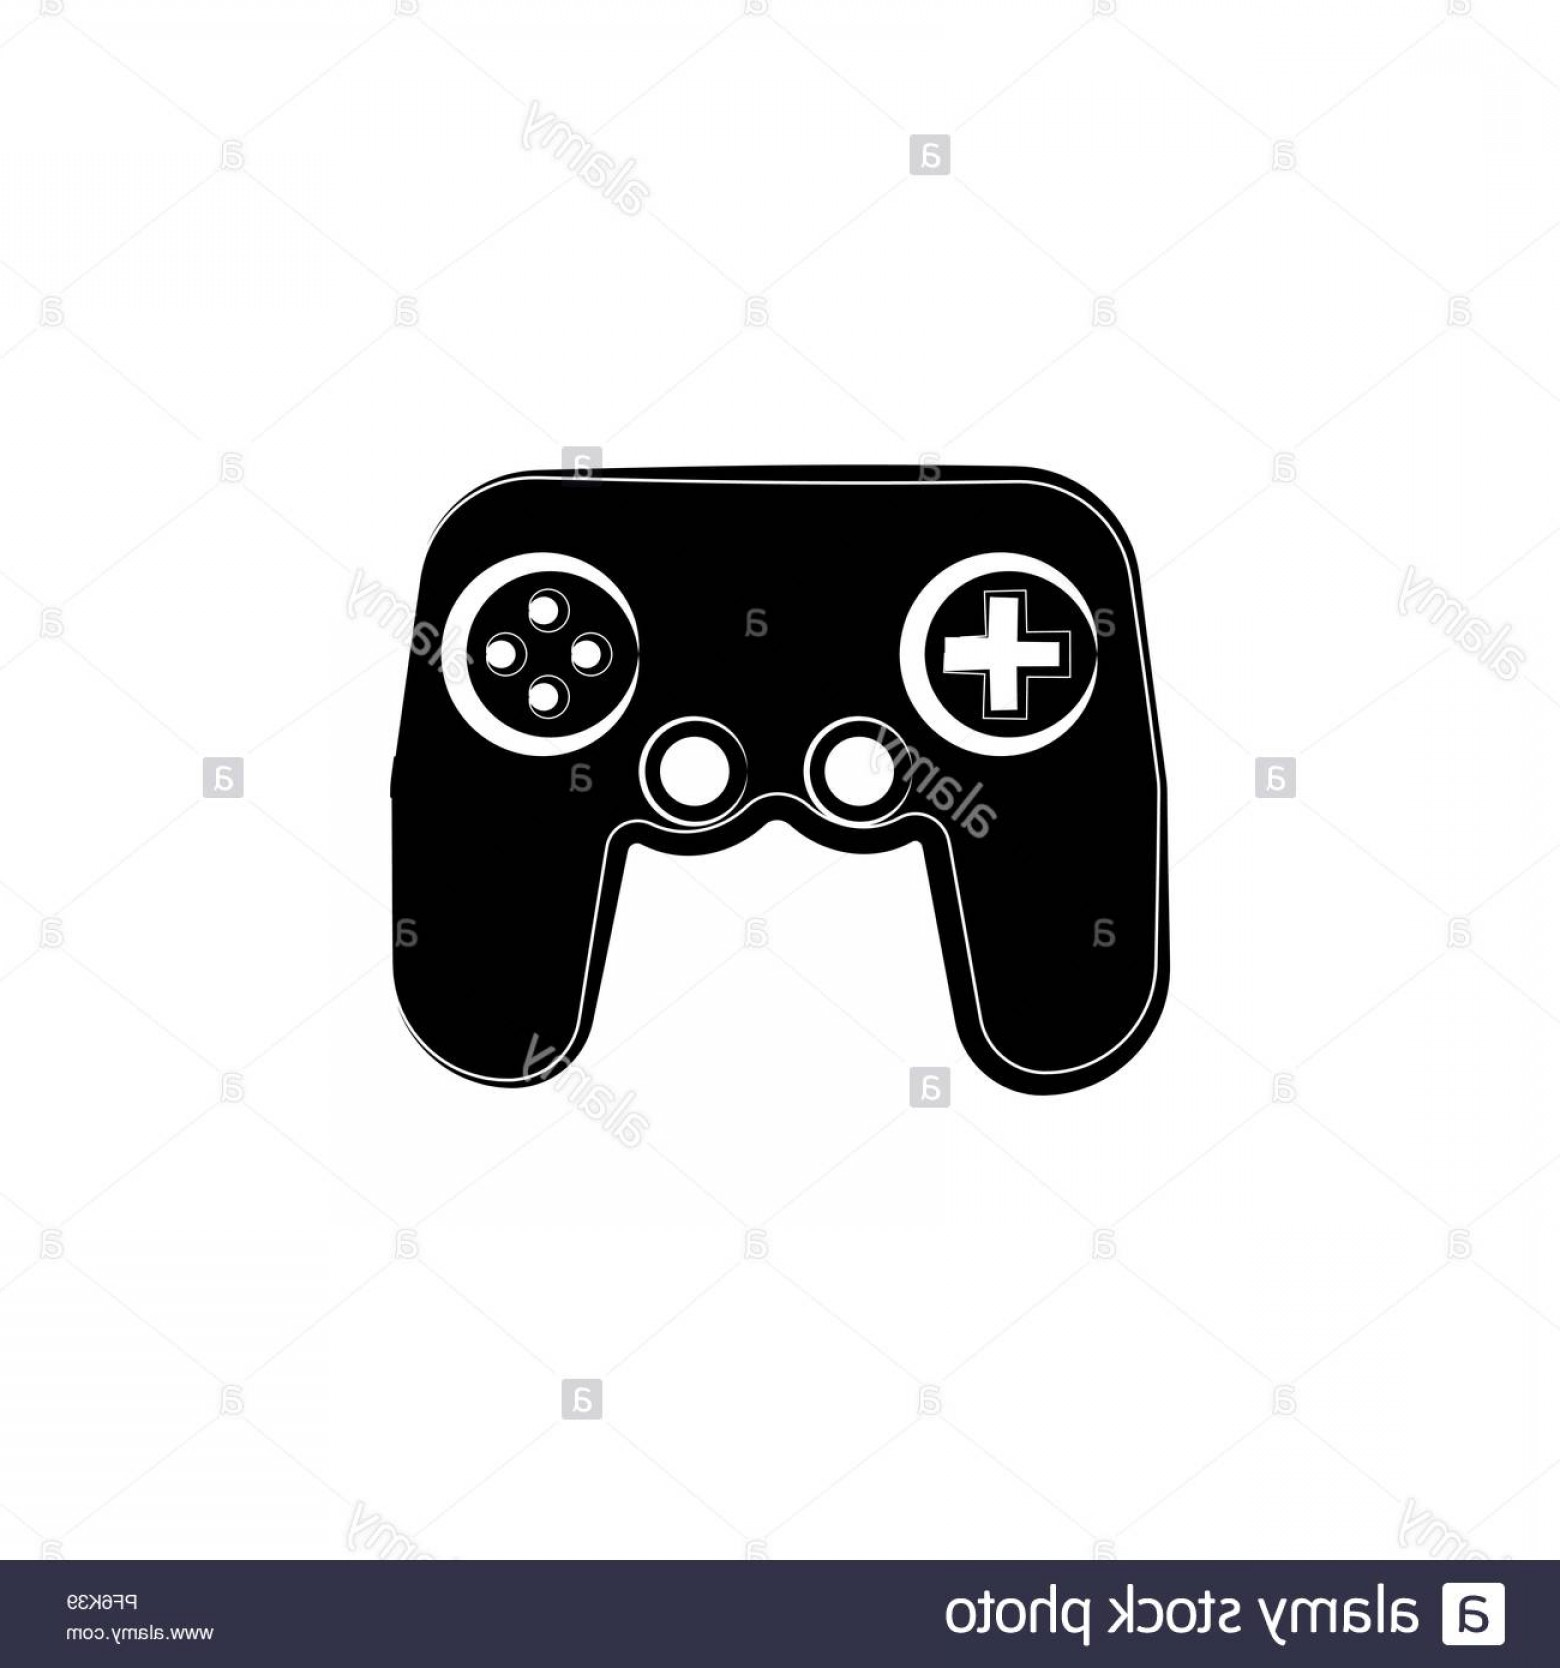 Xbox Game Controller Vector: Game Console Icon Black On White Background Image